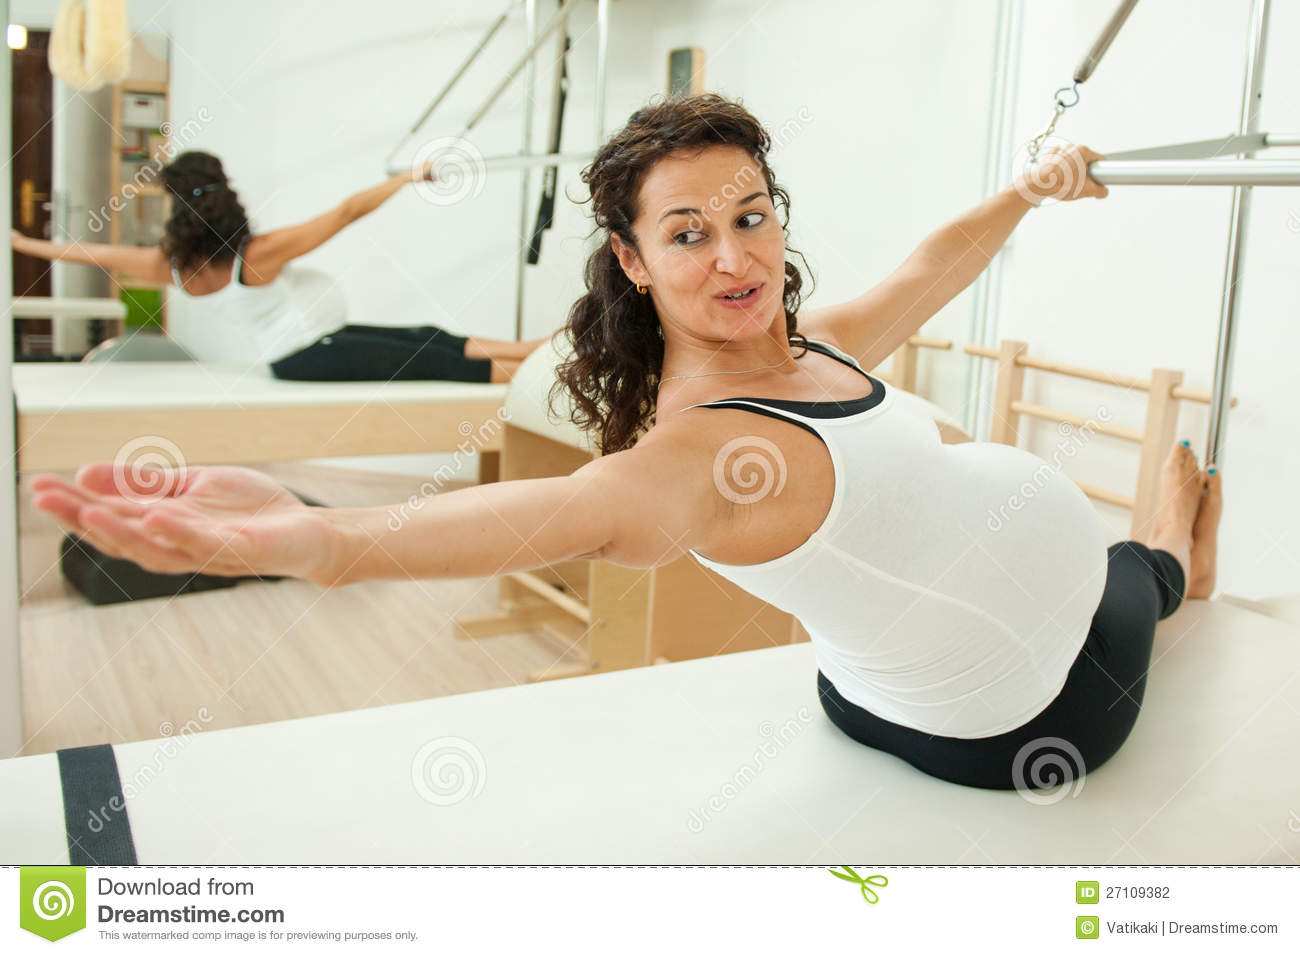 Download Pregnant Lady Doing Pilates Stock Photo - Image of motherhood, exercise: 27109382